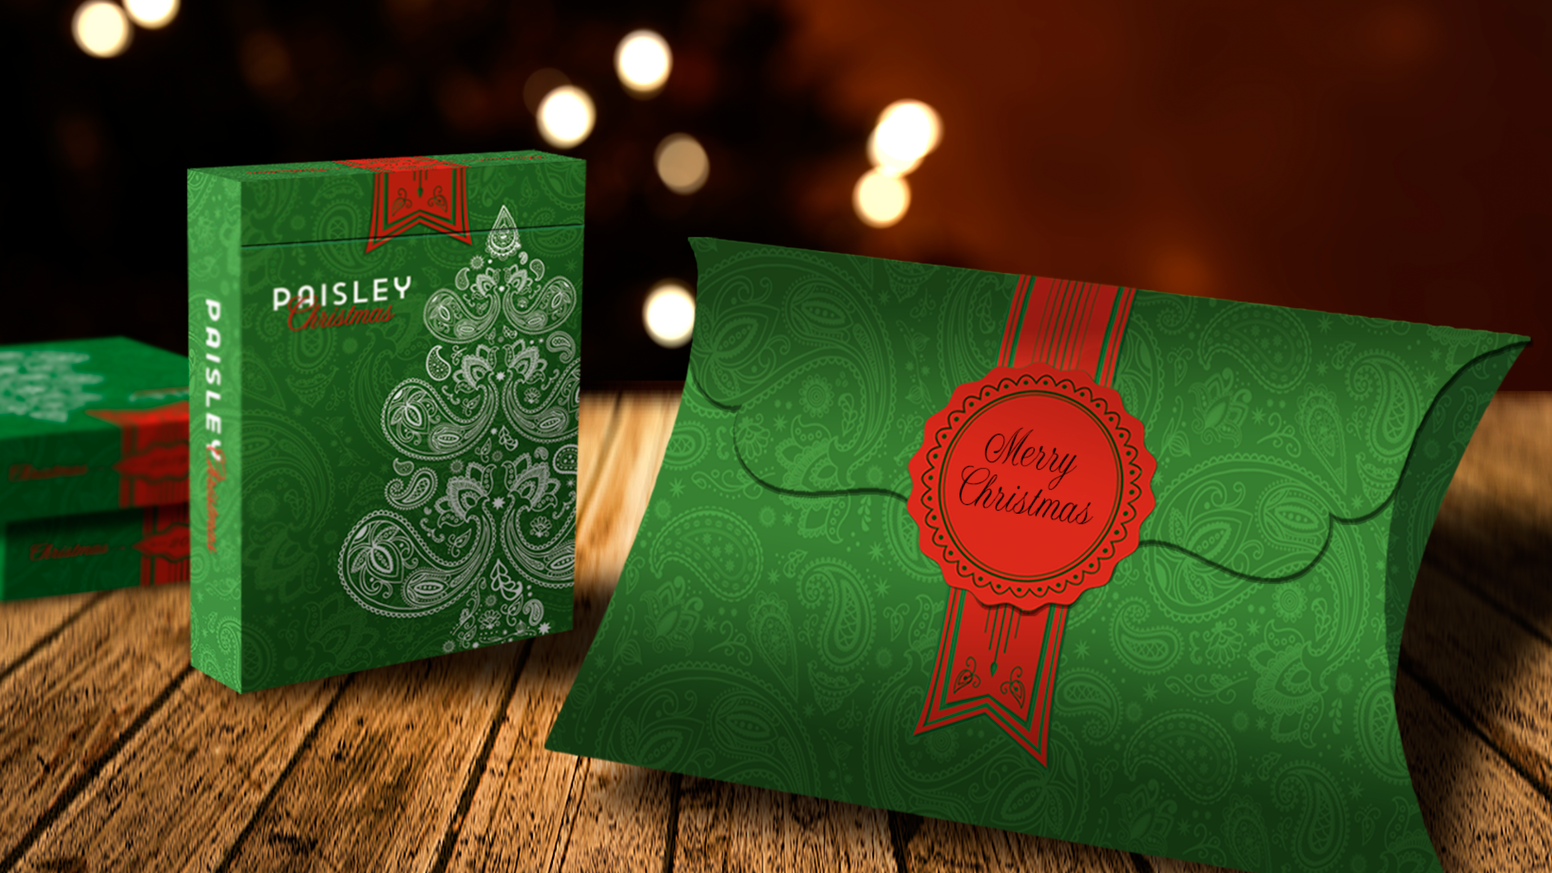 Metallic Green Paisley Playing Cards with exclusive giftbox - ONLY 15 DAYS!